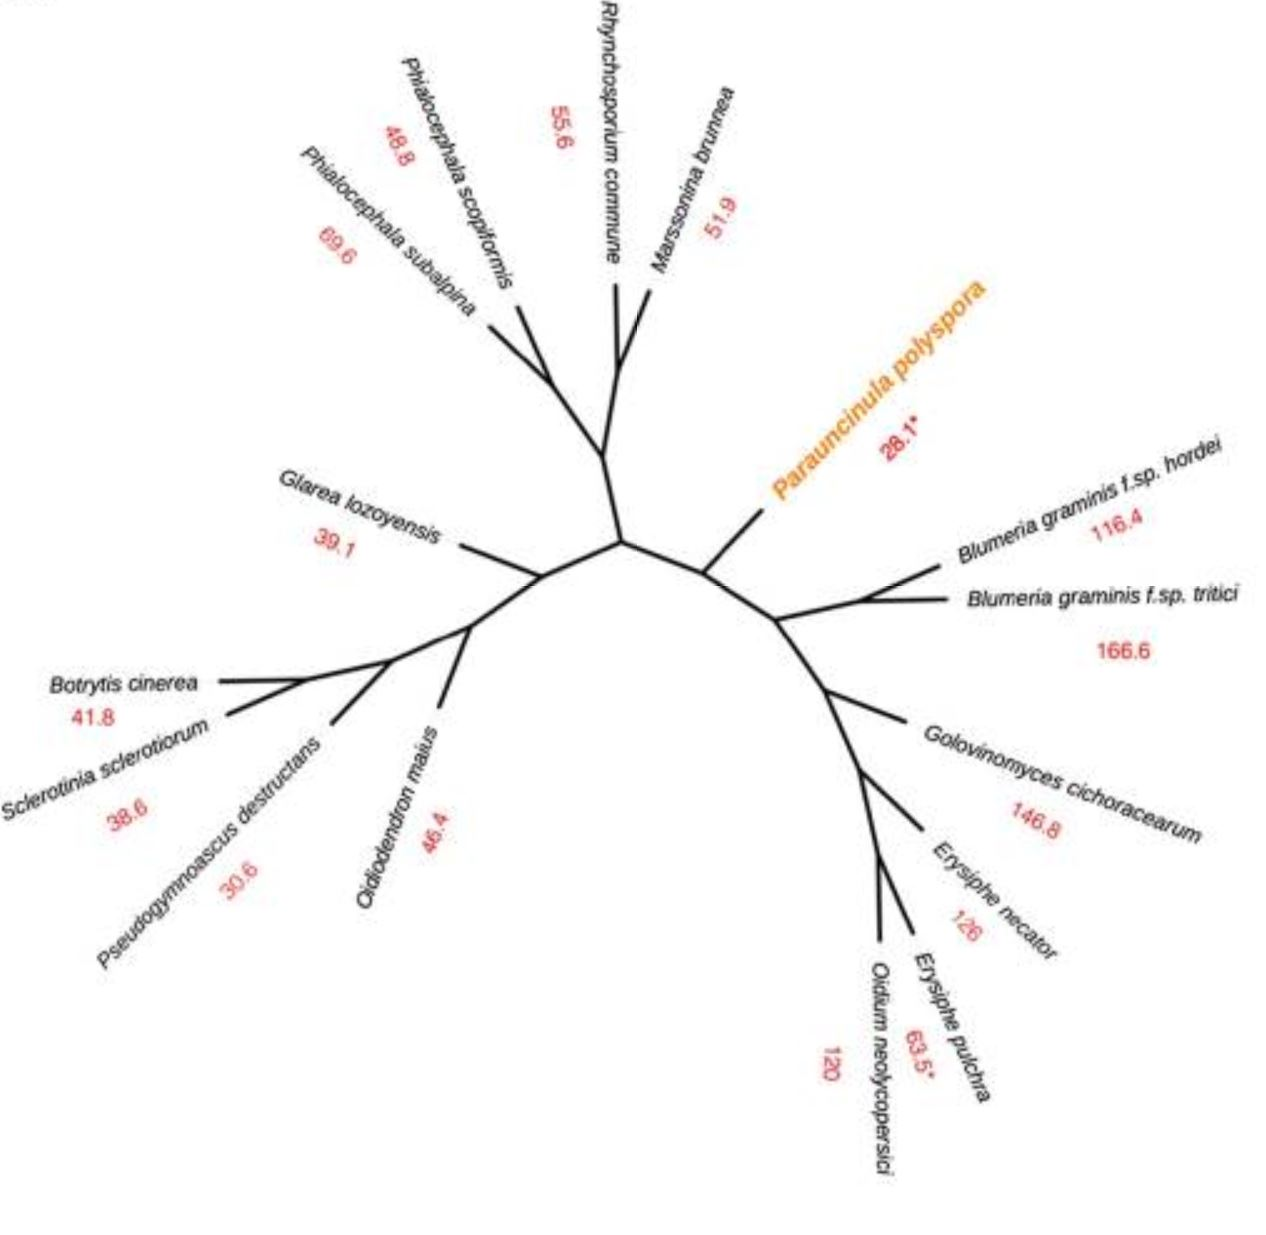 Multilocus phylogeny (cladogram) of selected leotiomycete fungi.